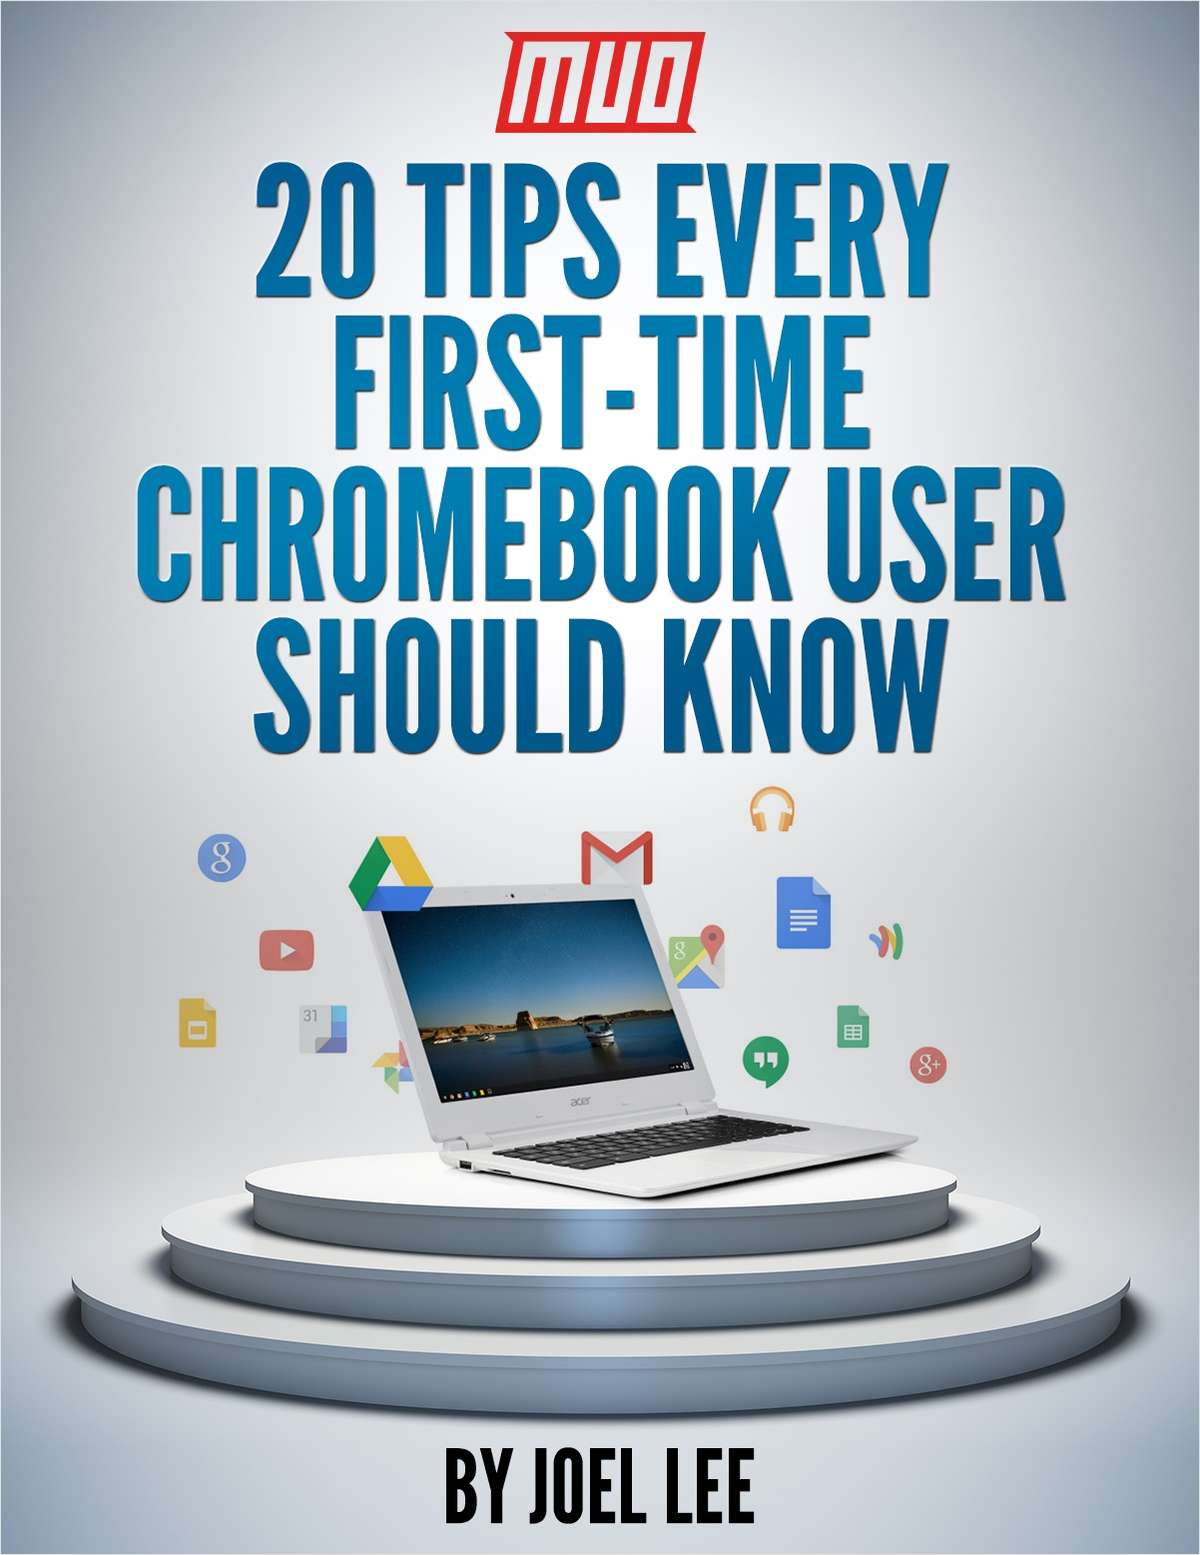 20 Tips Every First-Time Chromebook User Should Know